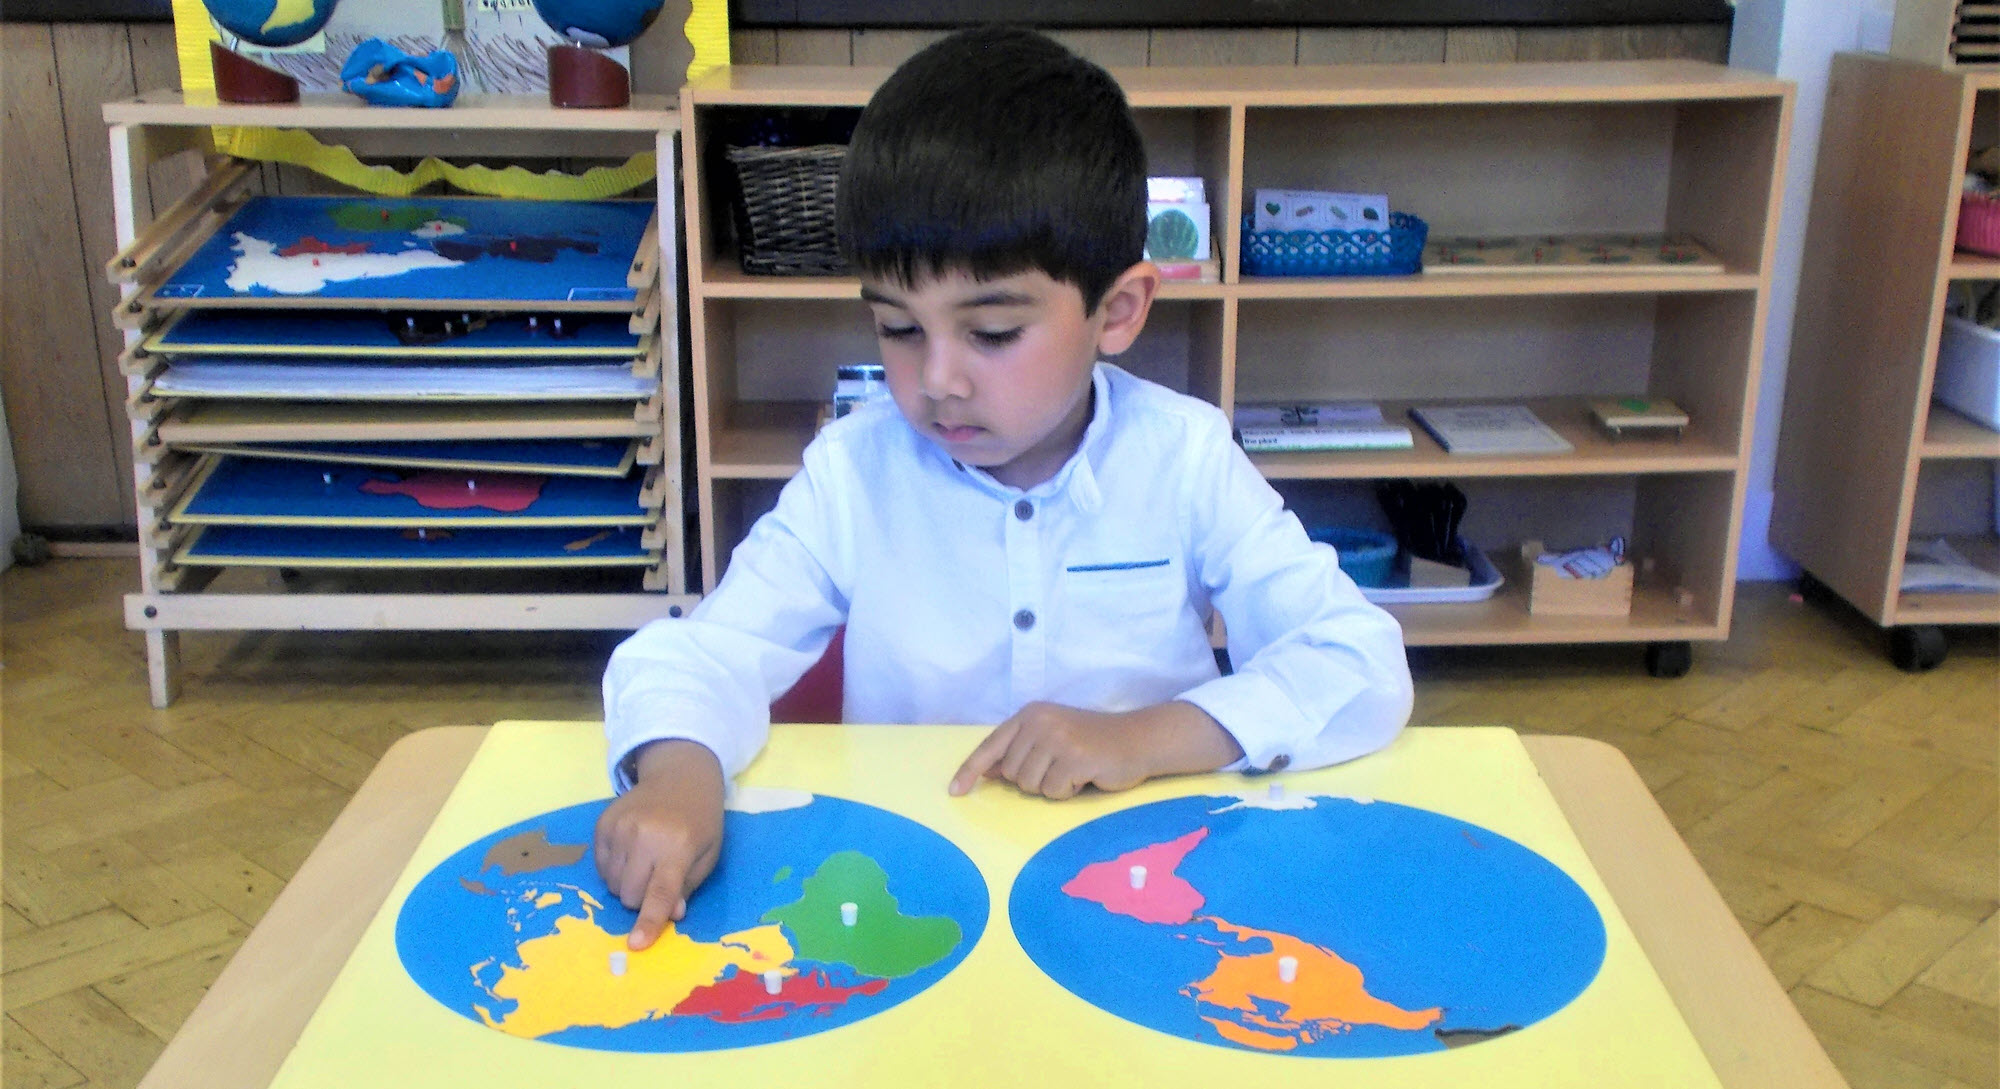 A leader in Montessori preschool education